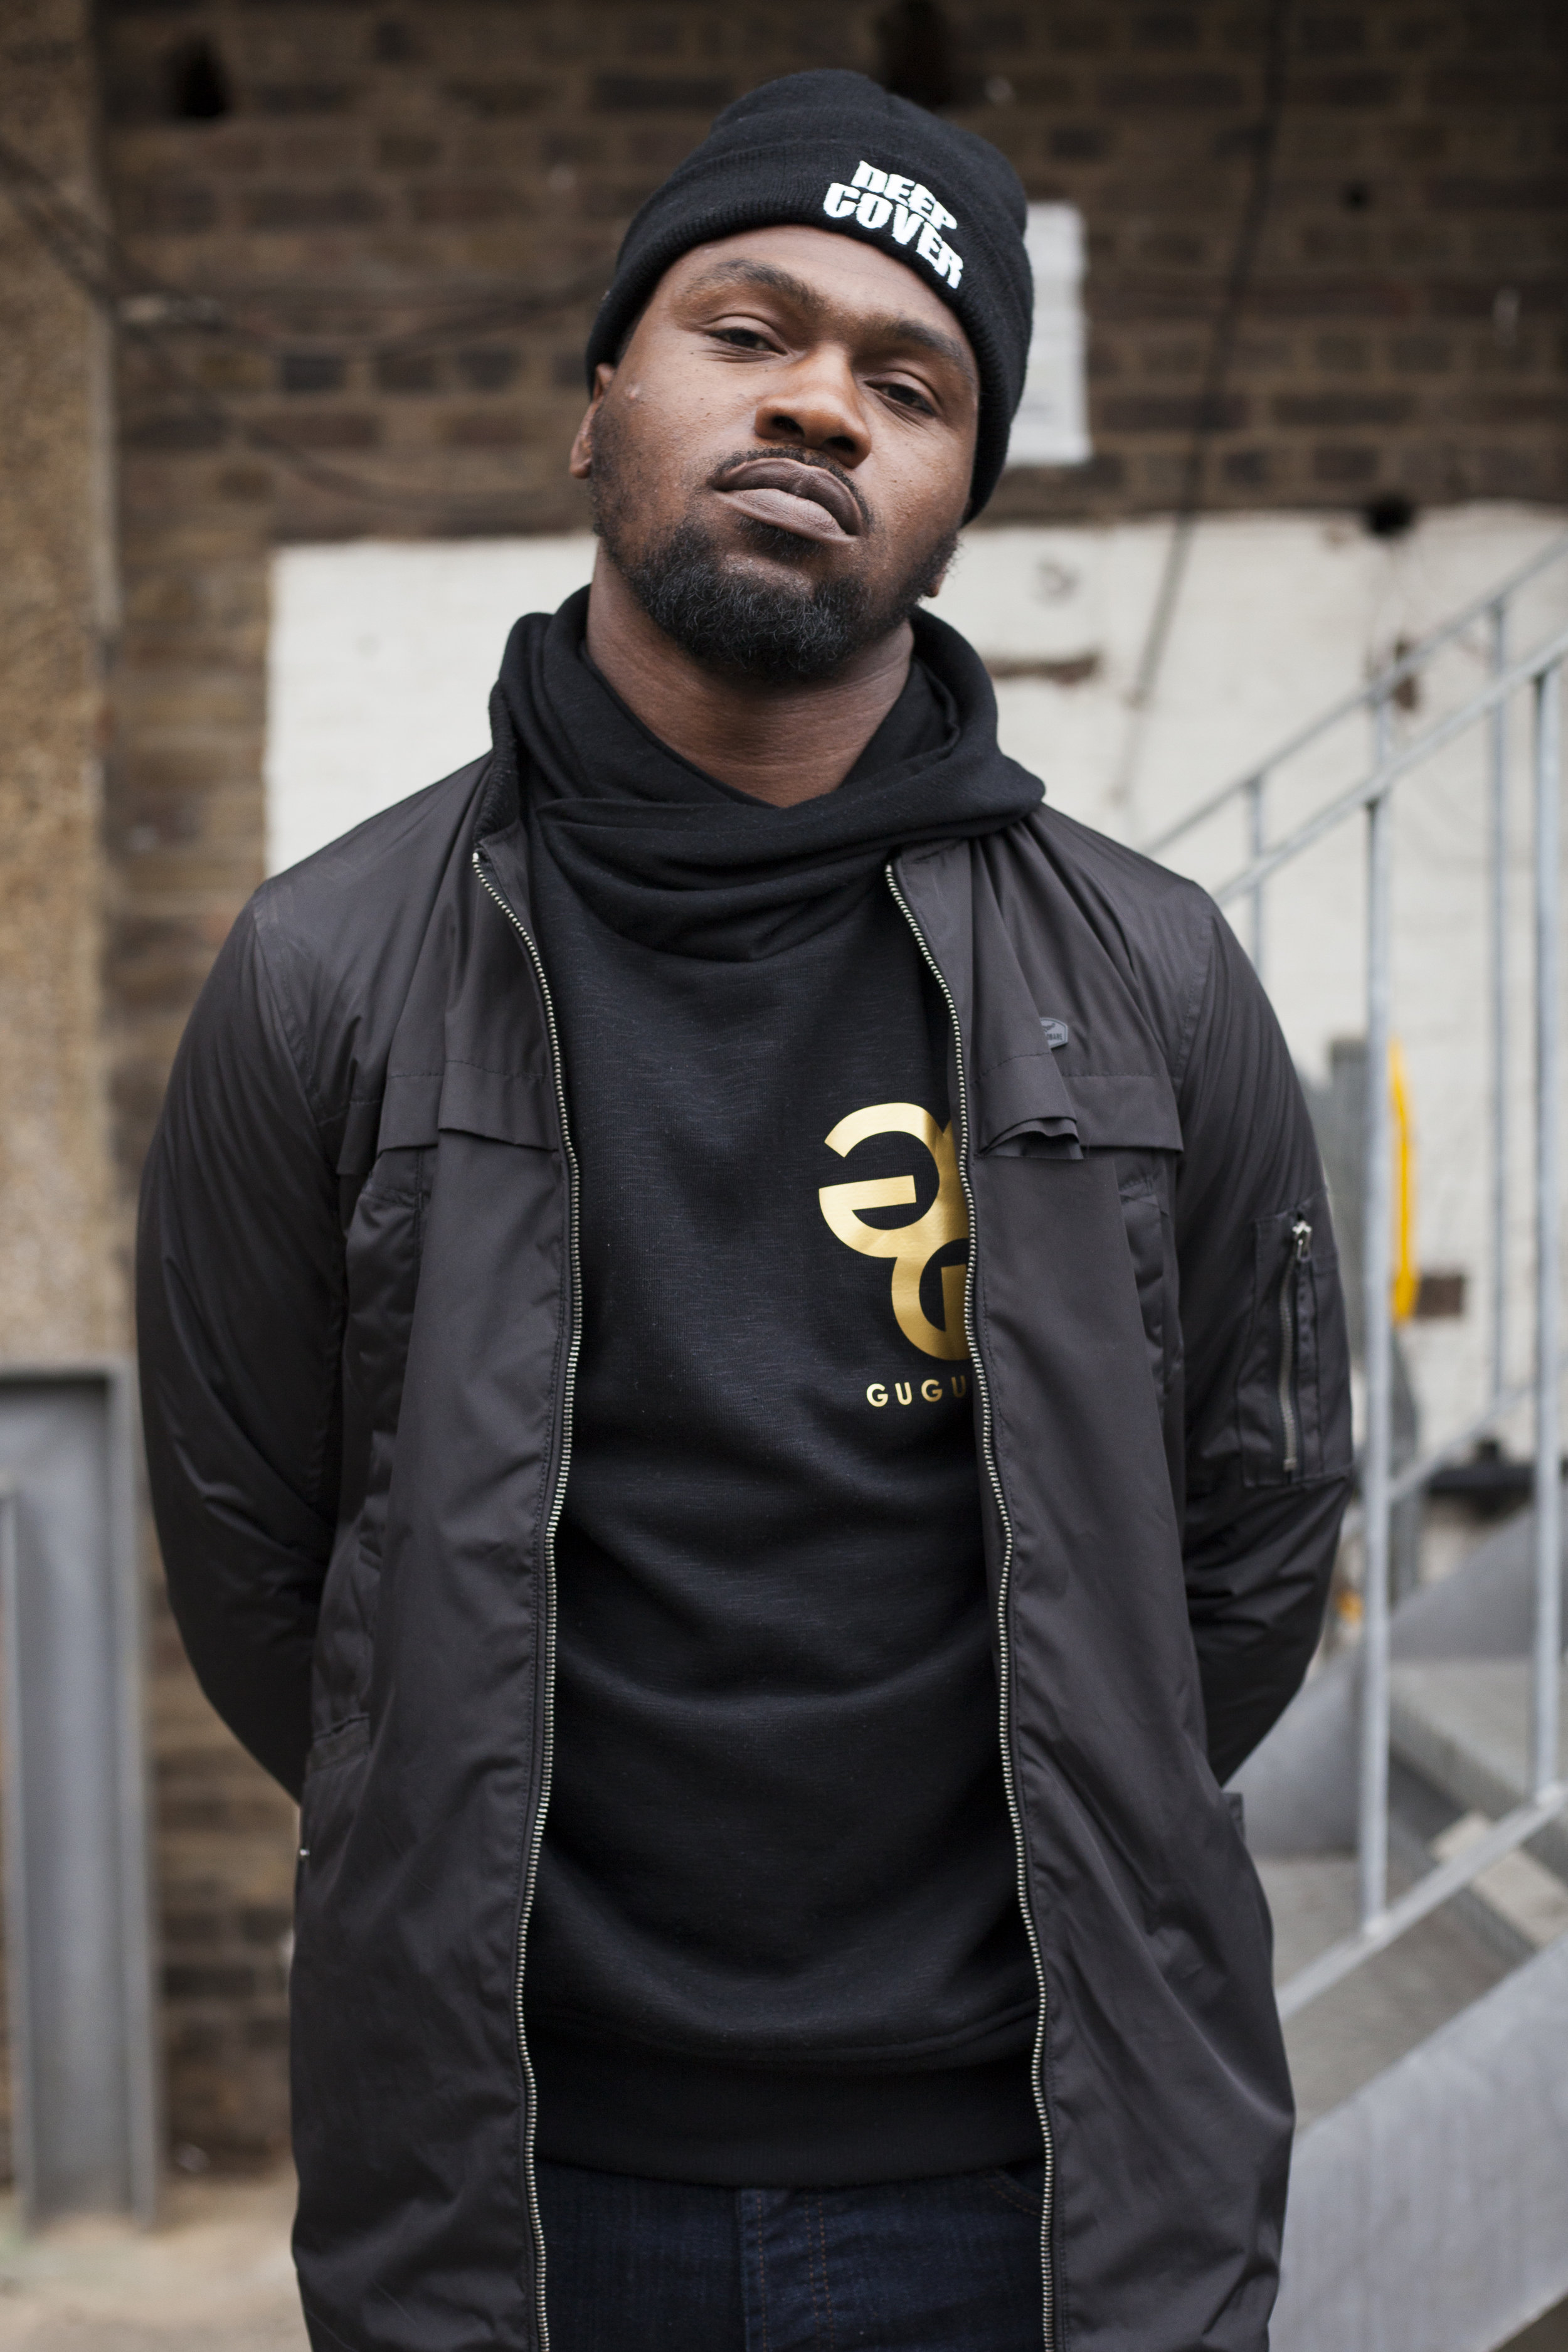 Magugu   Magugu is a rapper & videographer based in Cardiff. He will be featured heavily on new DC material, and will be responsible for important upcoming video content.   Facebook  /  Twitter